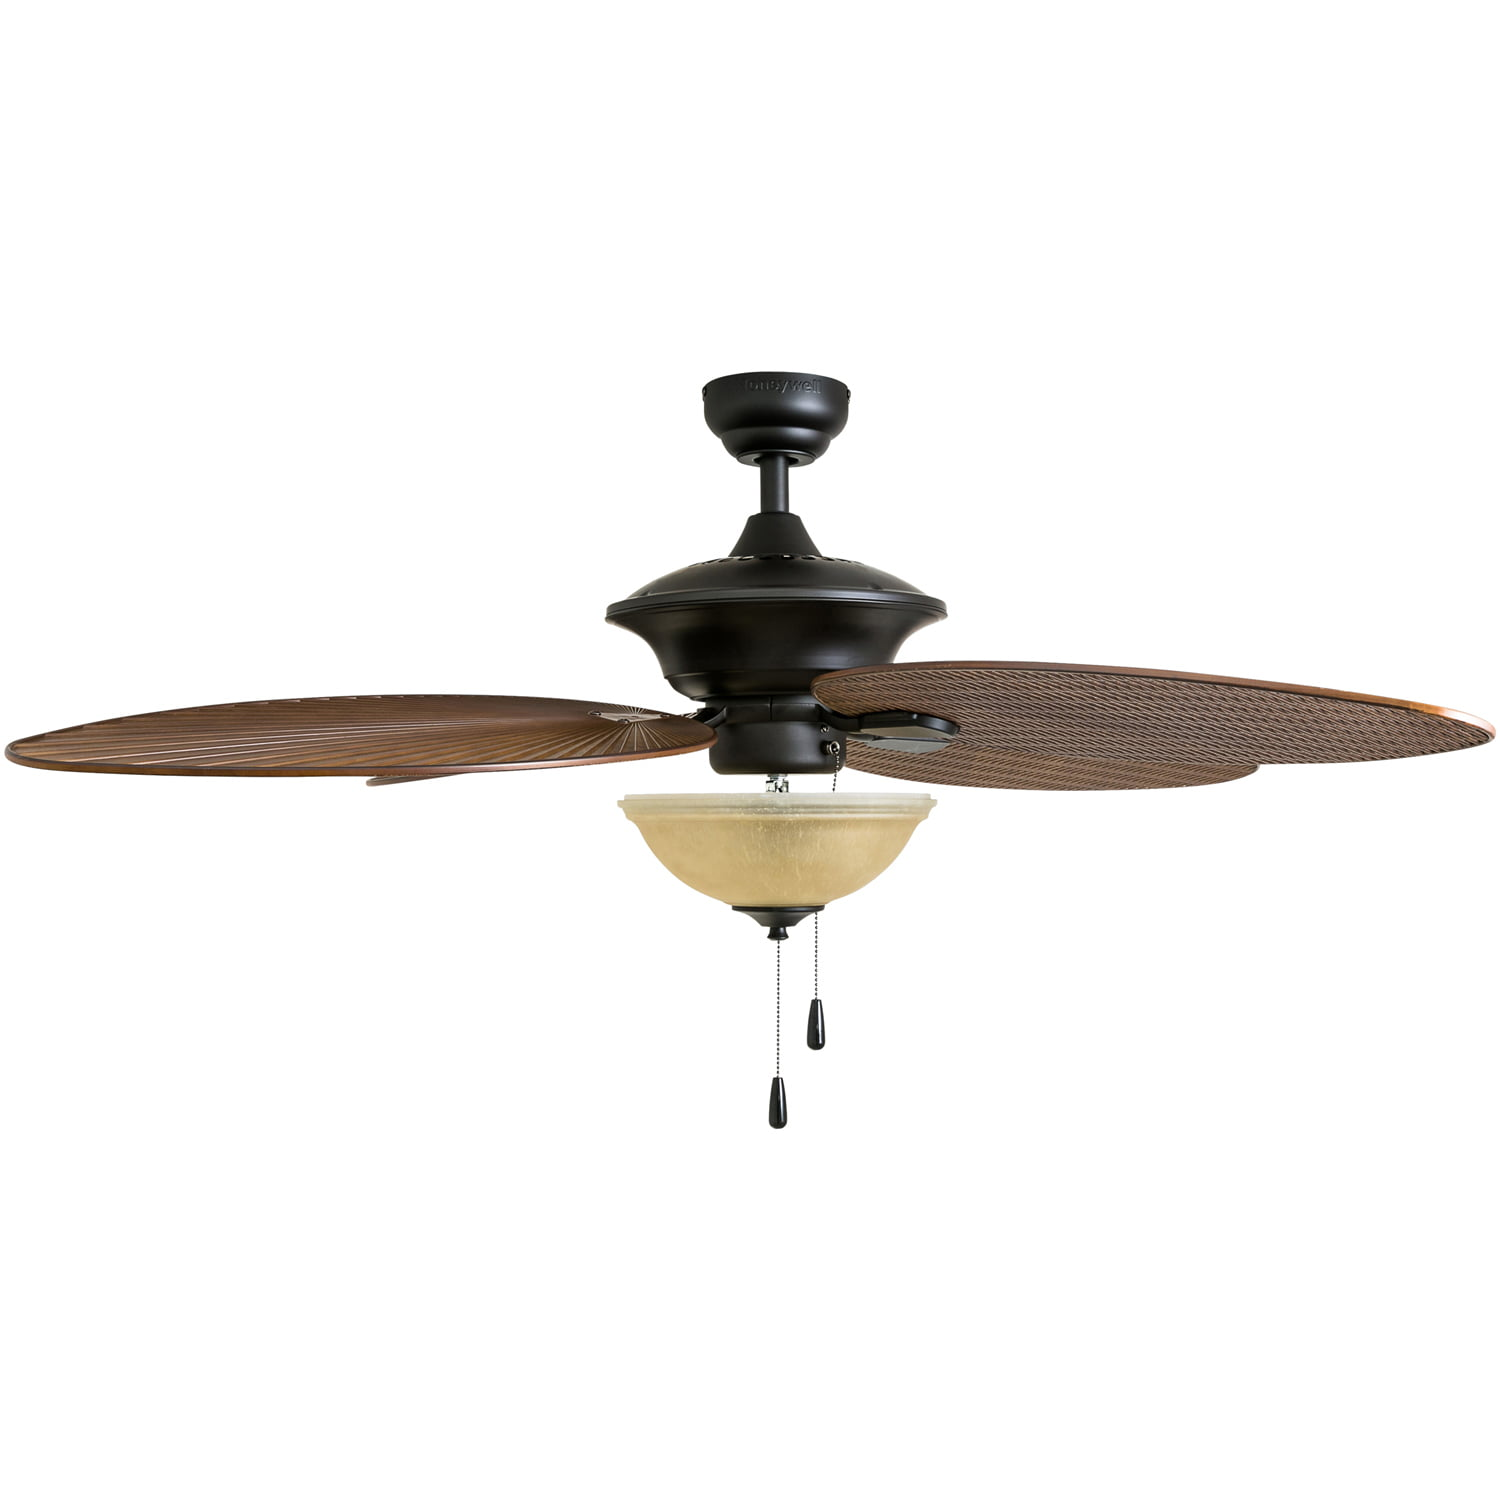 52 Quot Honeywell Tropical Ceiling Fan Great For Outdoor